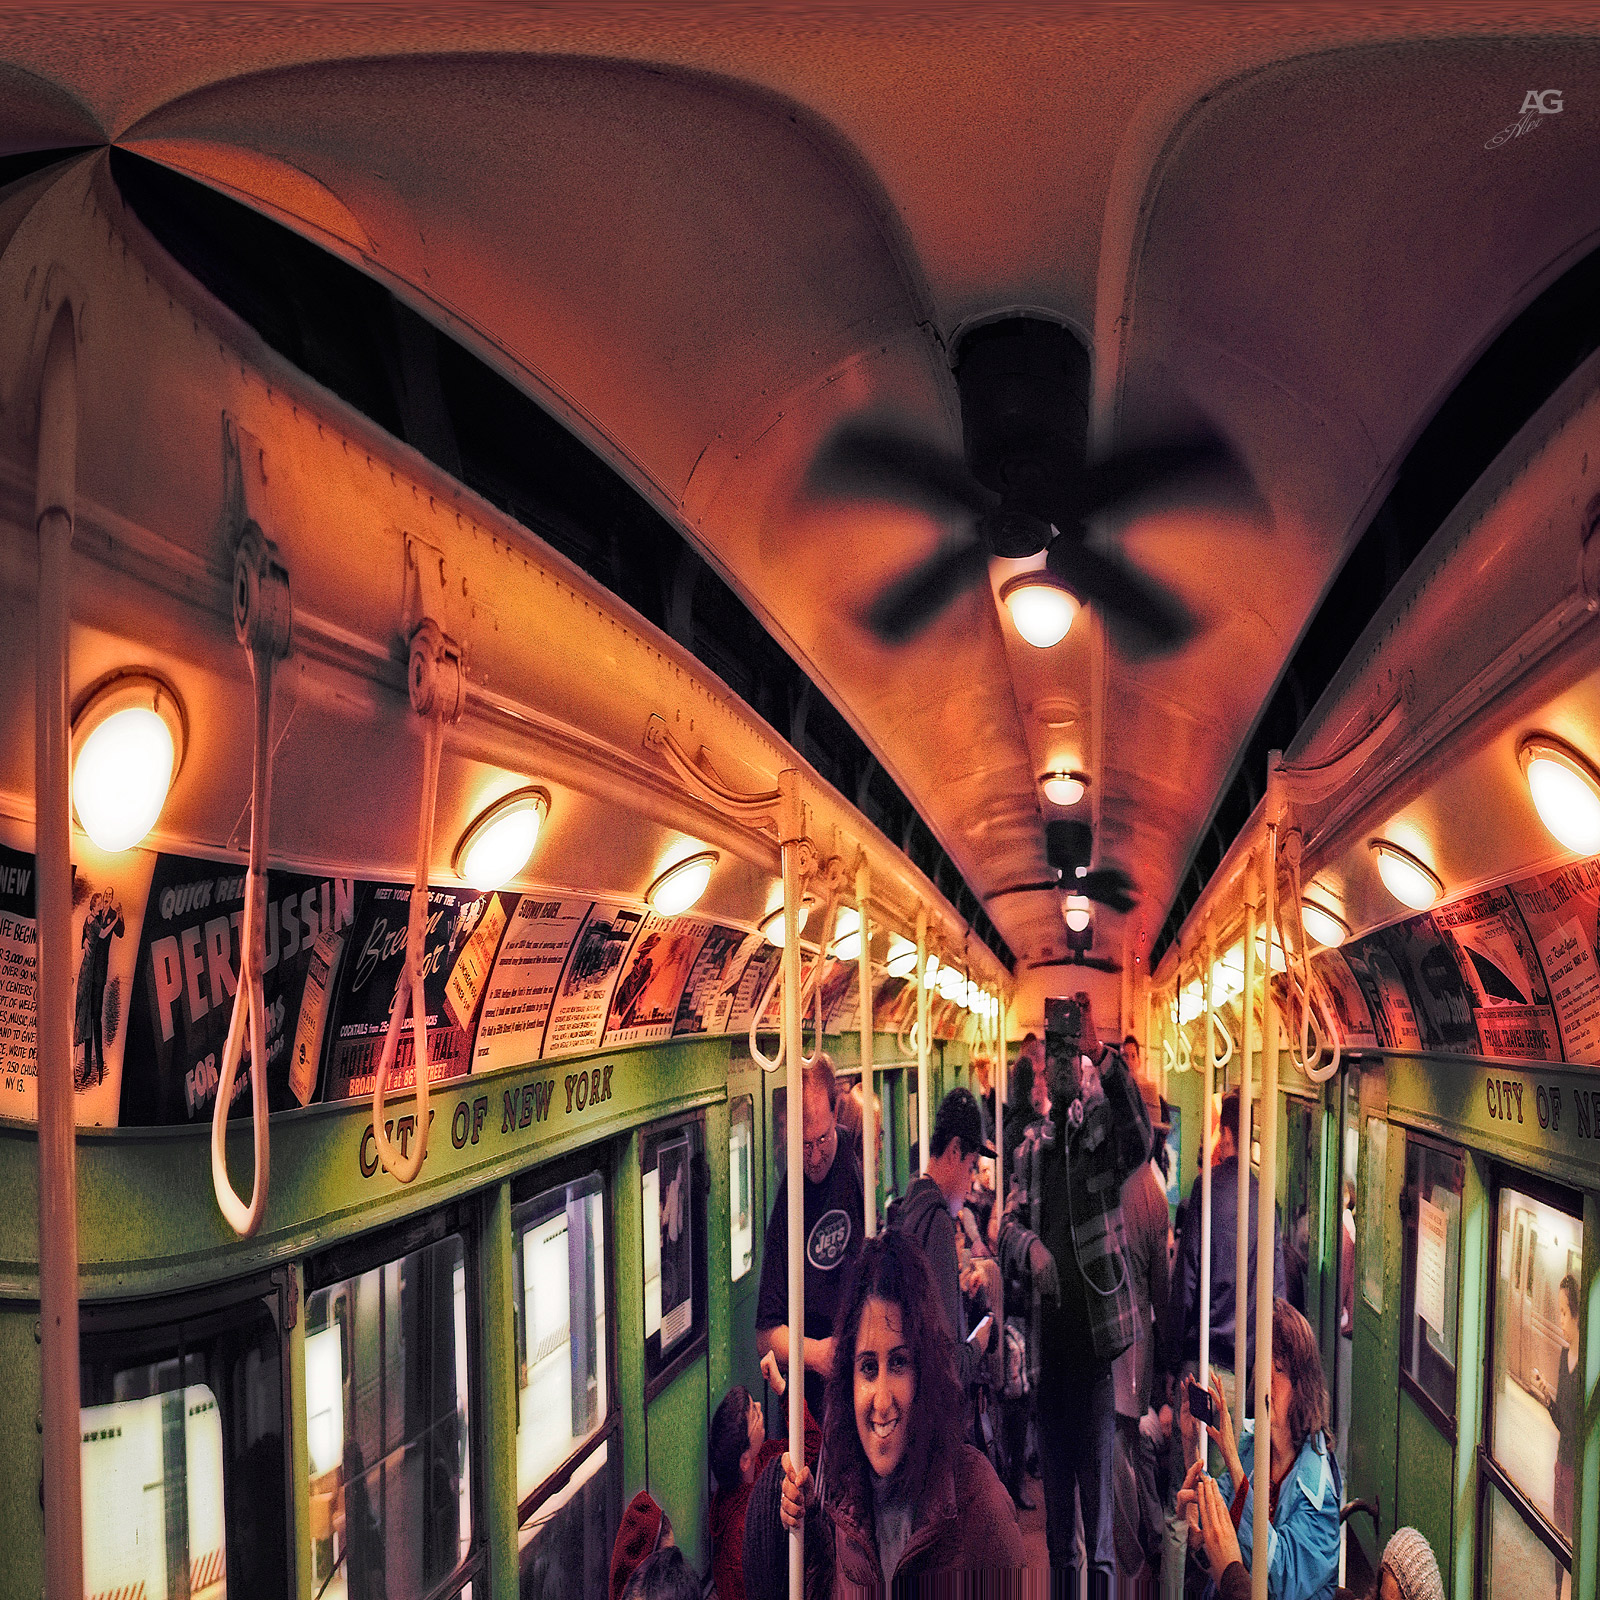 InteriorOfAVintageTrainFrom50s_unfolded_1600